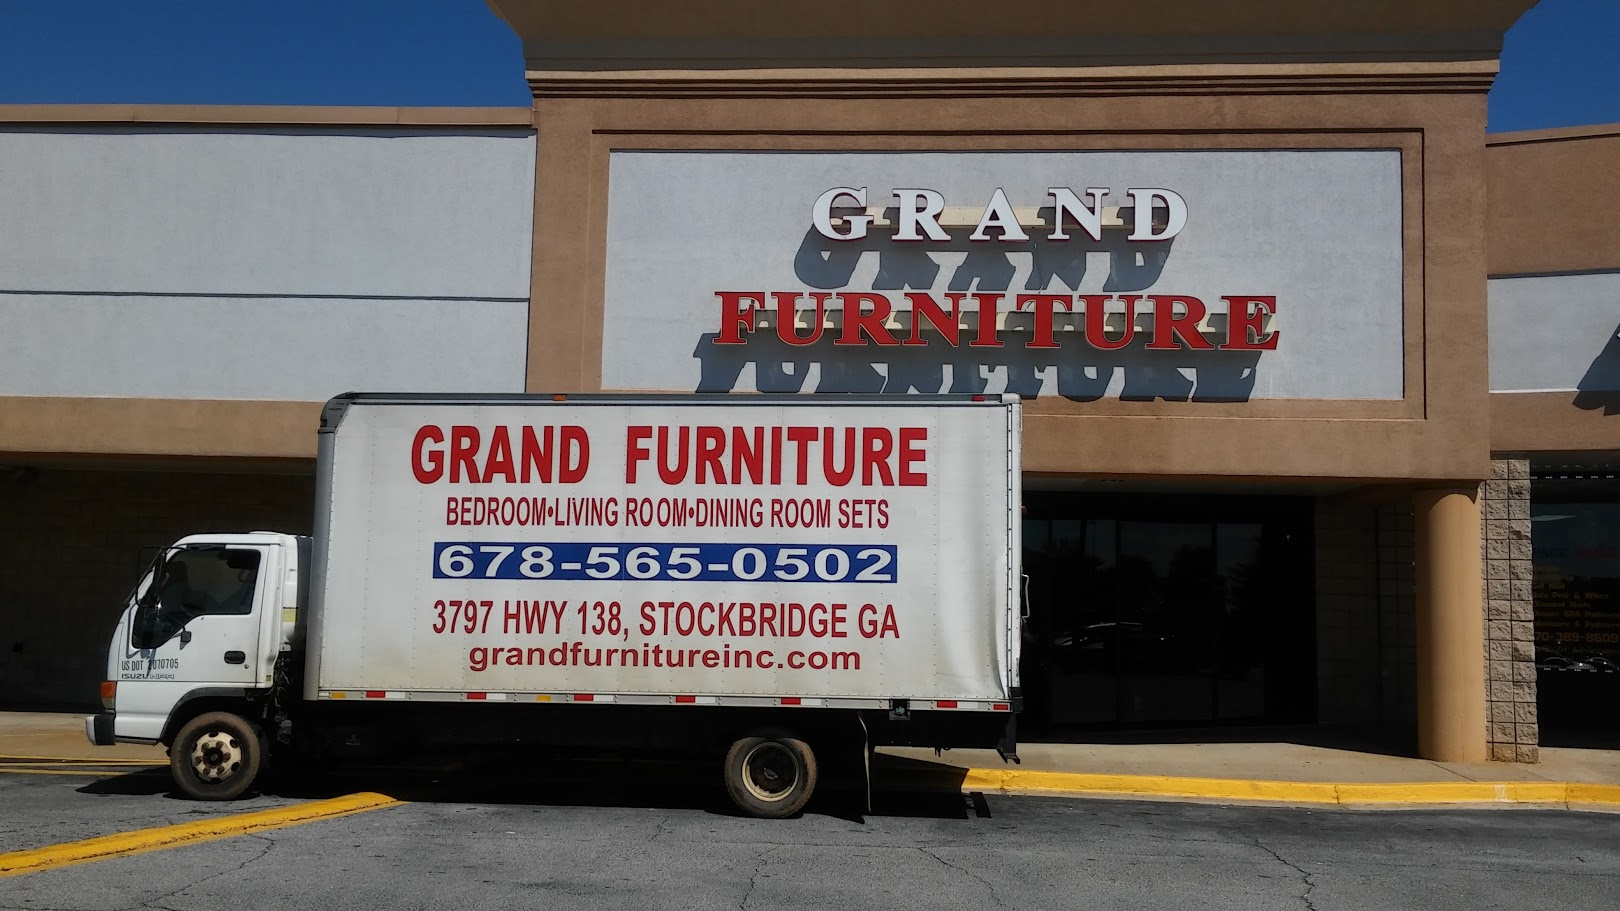 Furniture Financing Without Credit Check Walmart No Check 5 Ways To Build